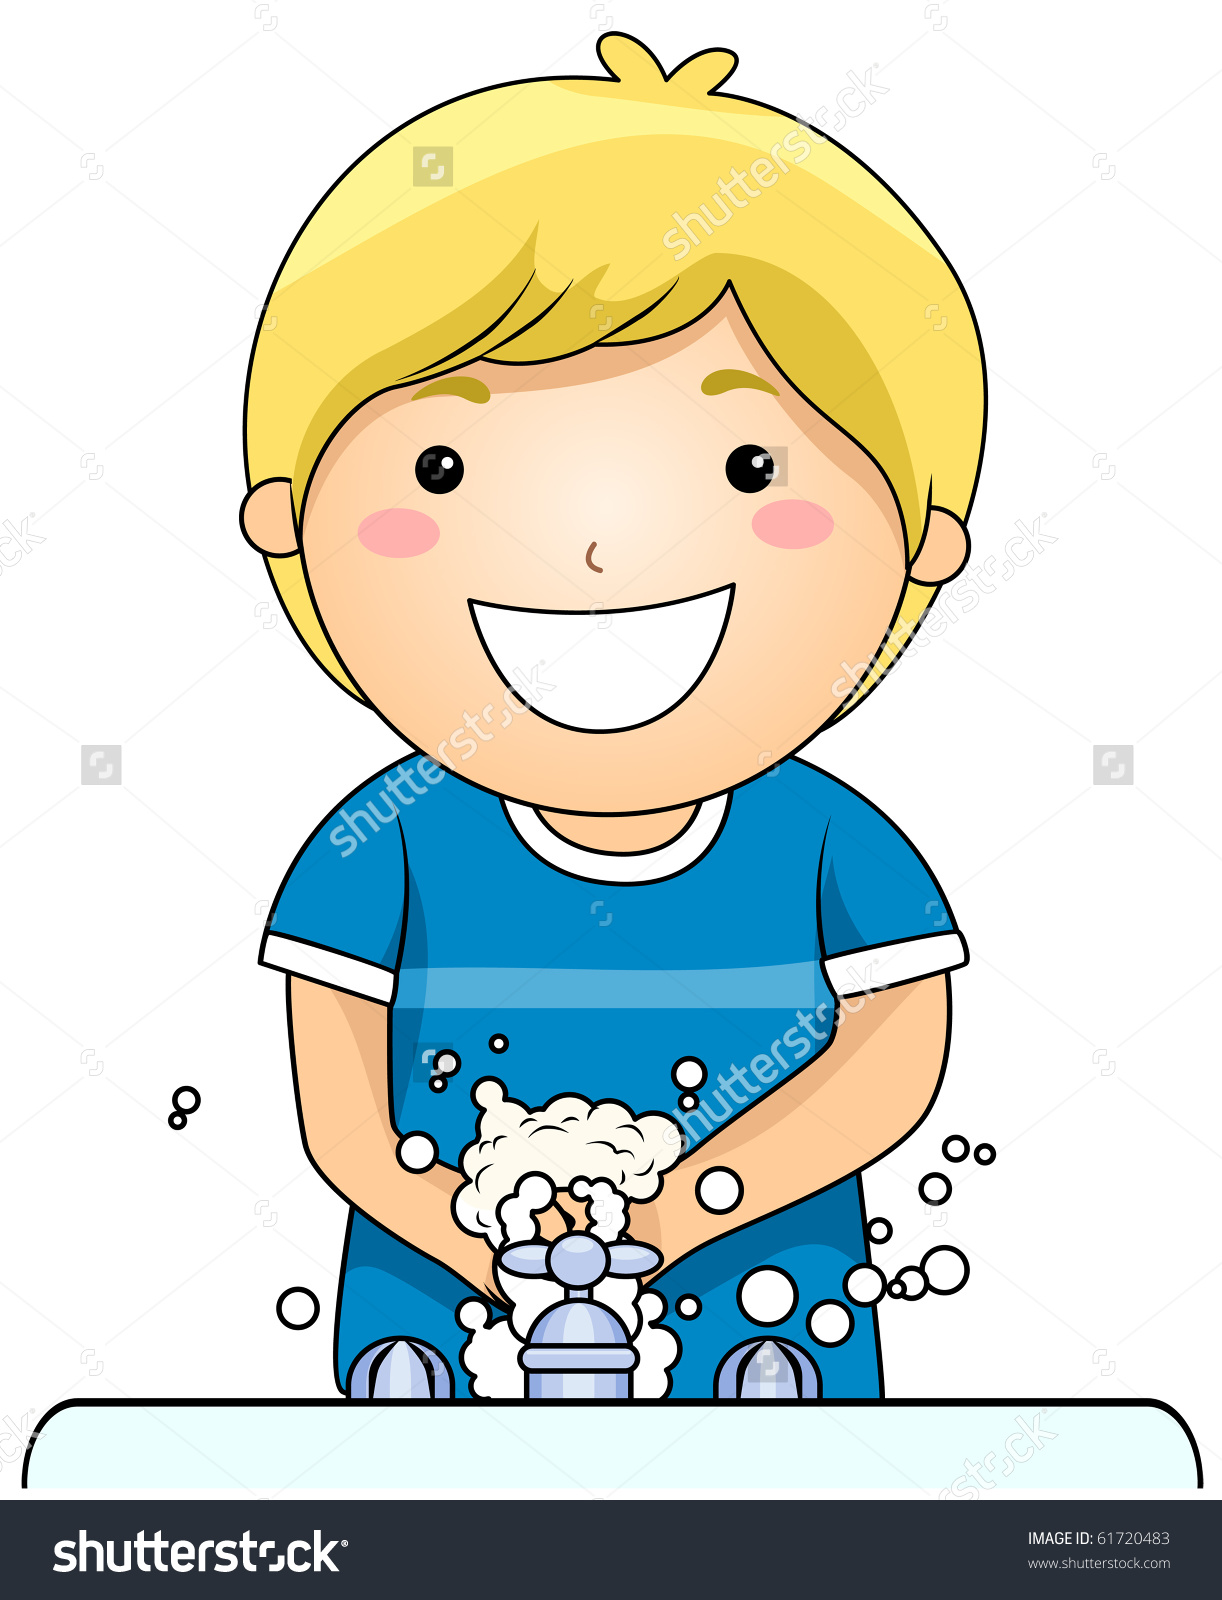 Child washing hands clipart. Clipartfest dedddbbbcb